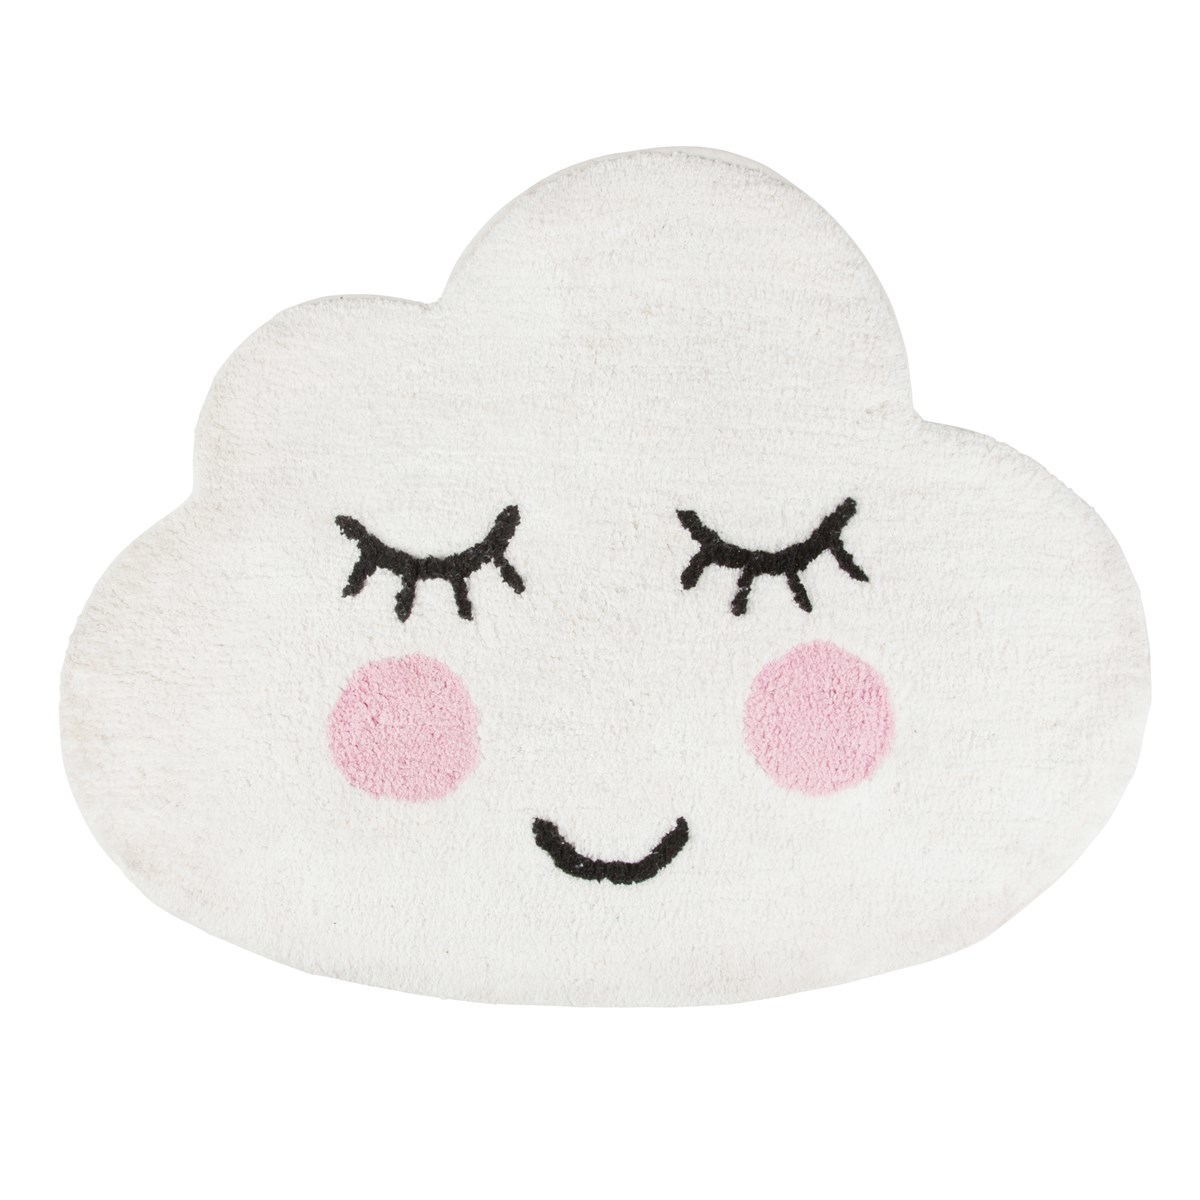 Sweet Dreams Smiling Cloud Rug image